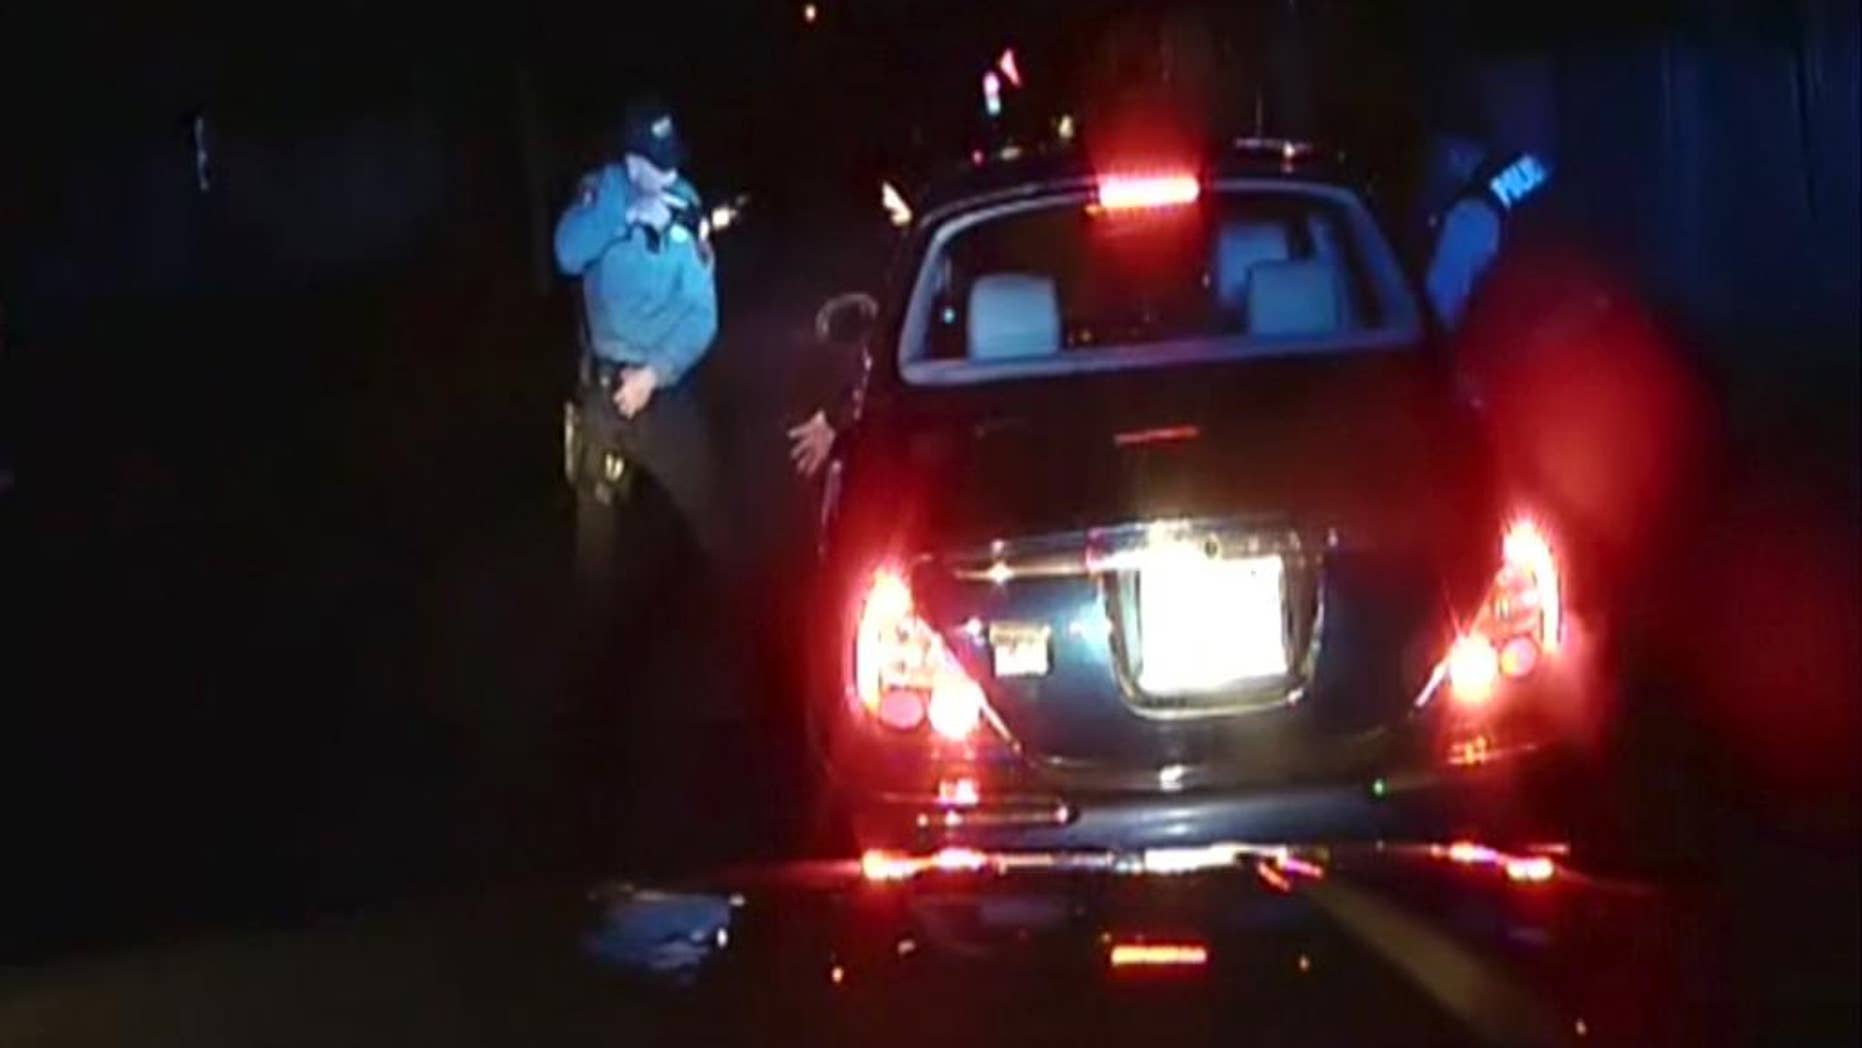 FILE - In this frame grab from an officer's dashboard camera taken Dec. 30, 2014, and provided by the Bridgeton, N..J. Police Department, police officers Braheme Days and Roger Worley stand near a car they pulled over for running a stop sign in Bridgeton. A grand jury has voted not to file charges against the two police officers for fatally shooting a man who defied orders by stepping out of a car with his hands raised during a traffic stop, a killing captured by their patrol car's dashboard camera, prosecutors said Thursday, Aug. 20, 2015. (AP Photo/Bridgeton Police Department, File)